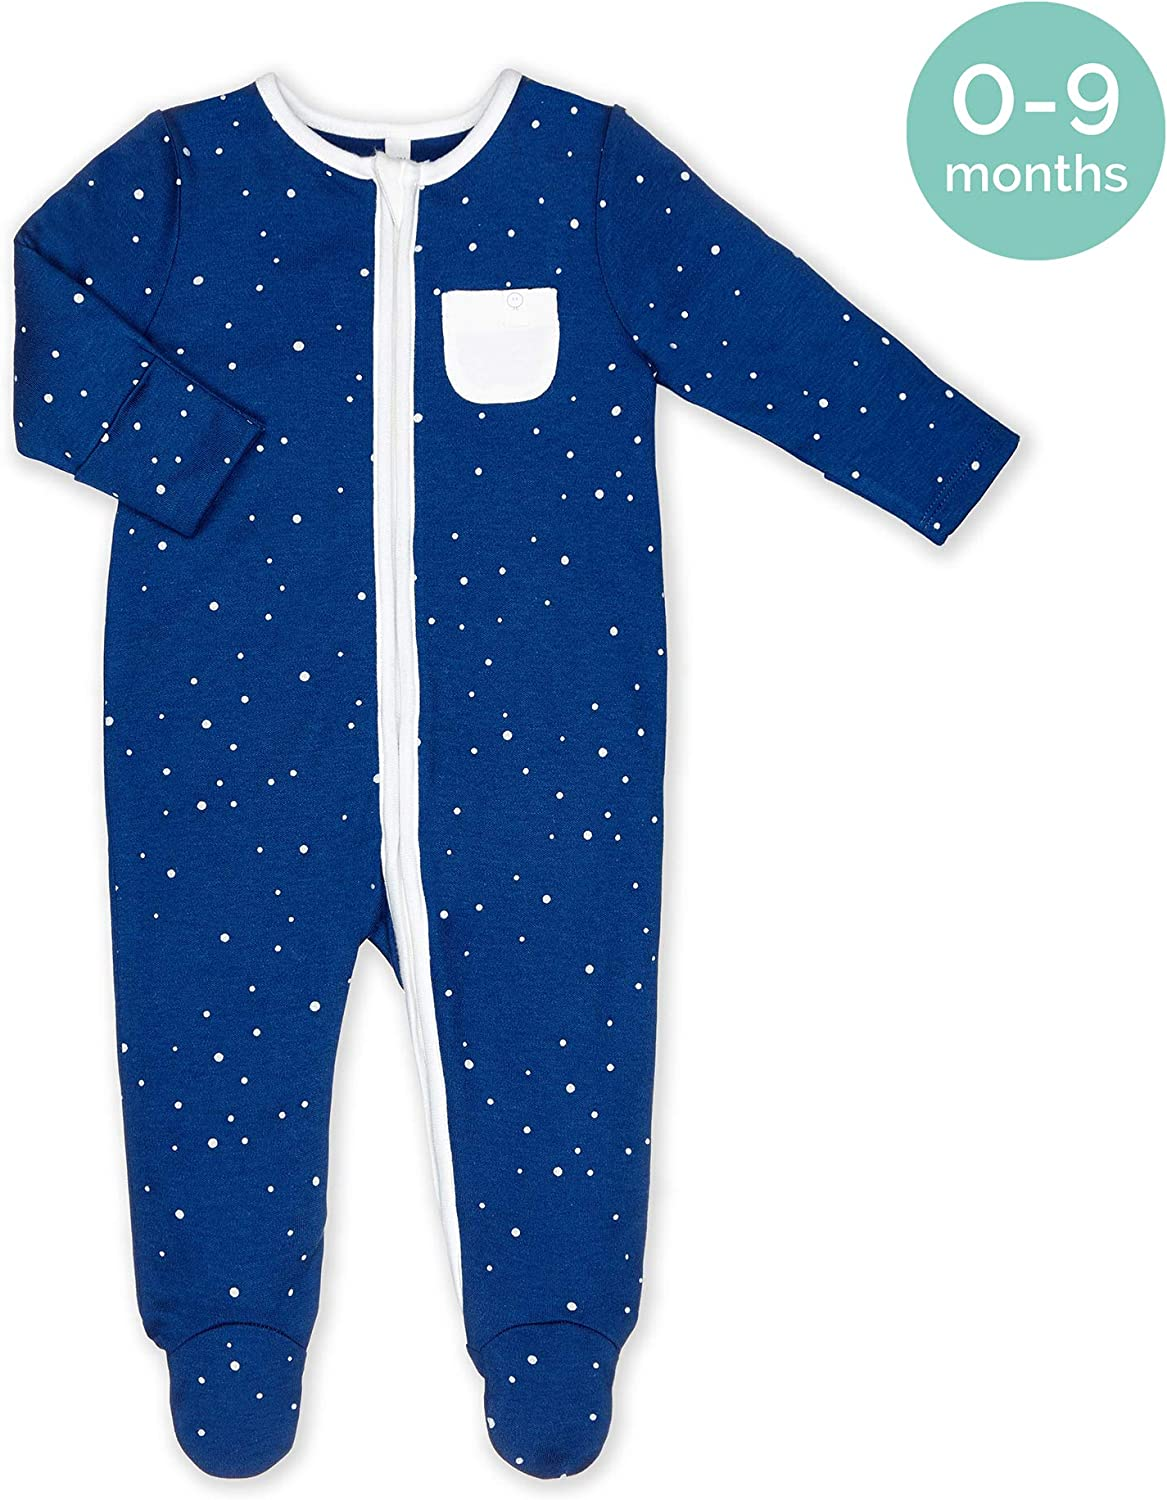 MORI Zip-Up Sleepsuit available from newborn up to 2 years 30/% Organic Cotton /& 70/% Bamboo 0-3 Months, Night Sky